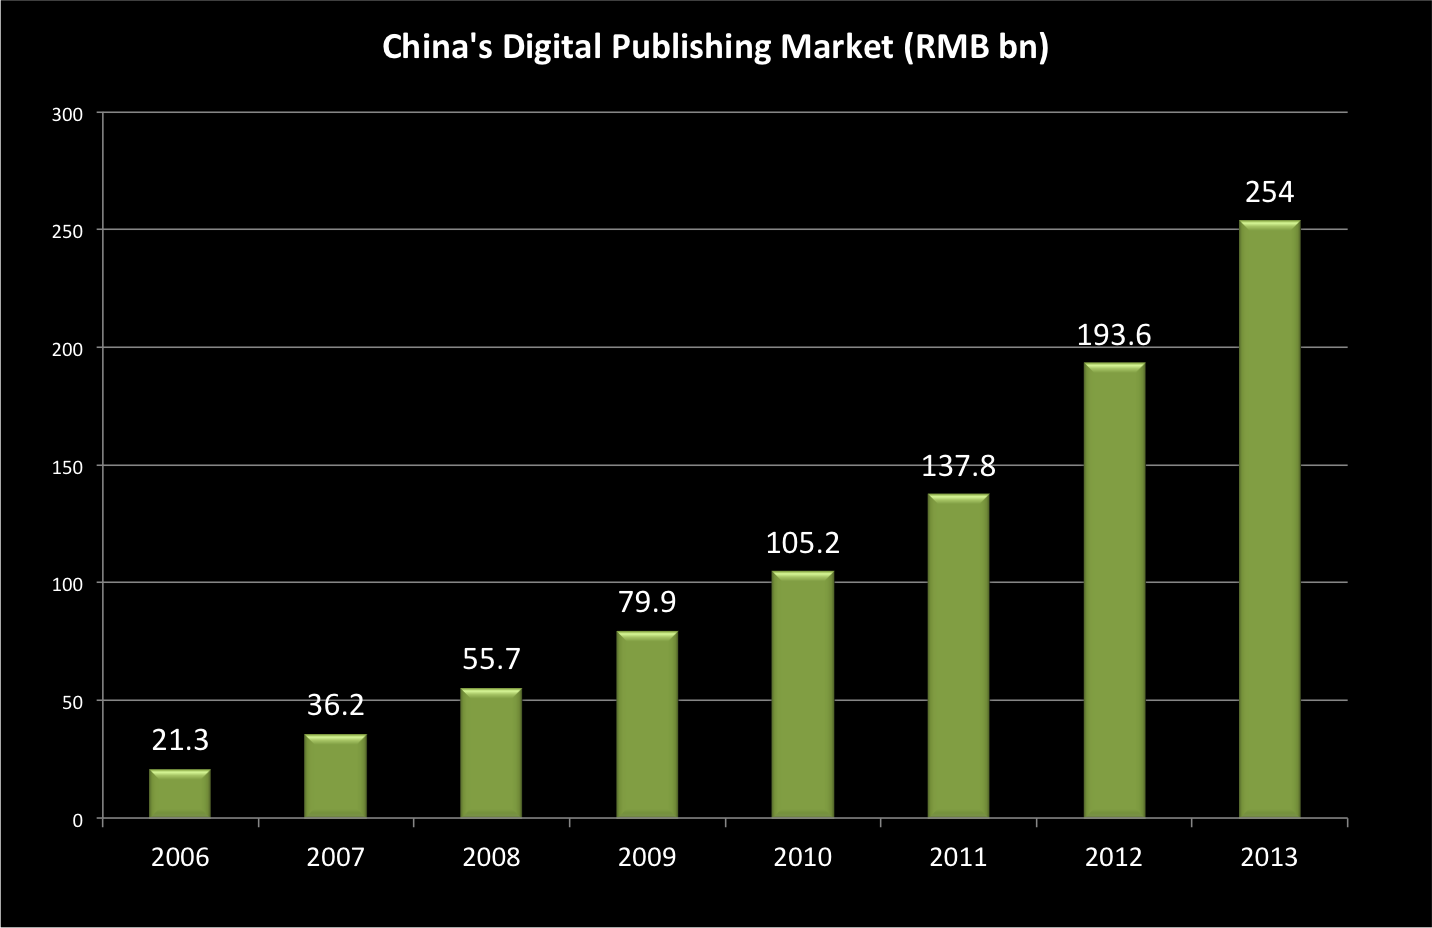 Source: The Chinese Academy of Press and Publication